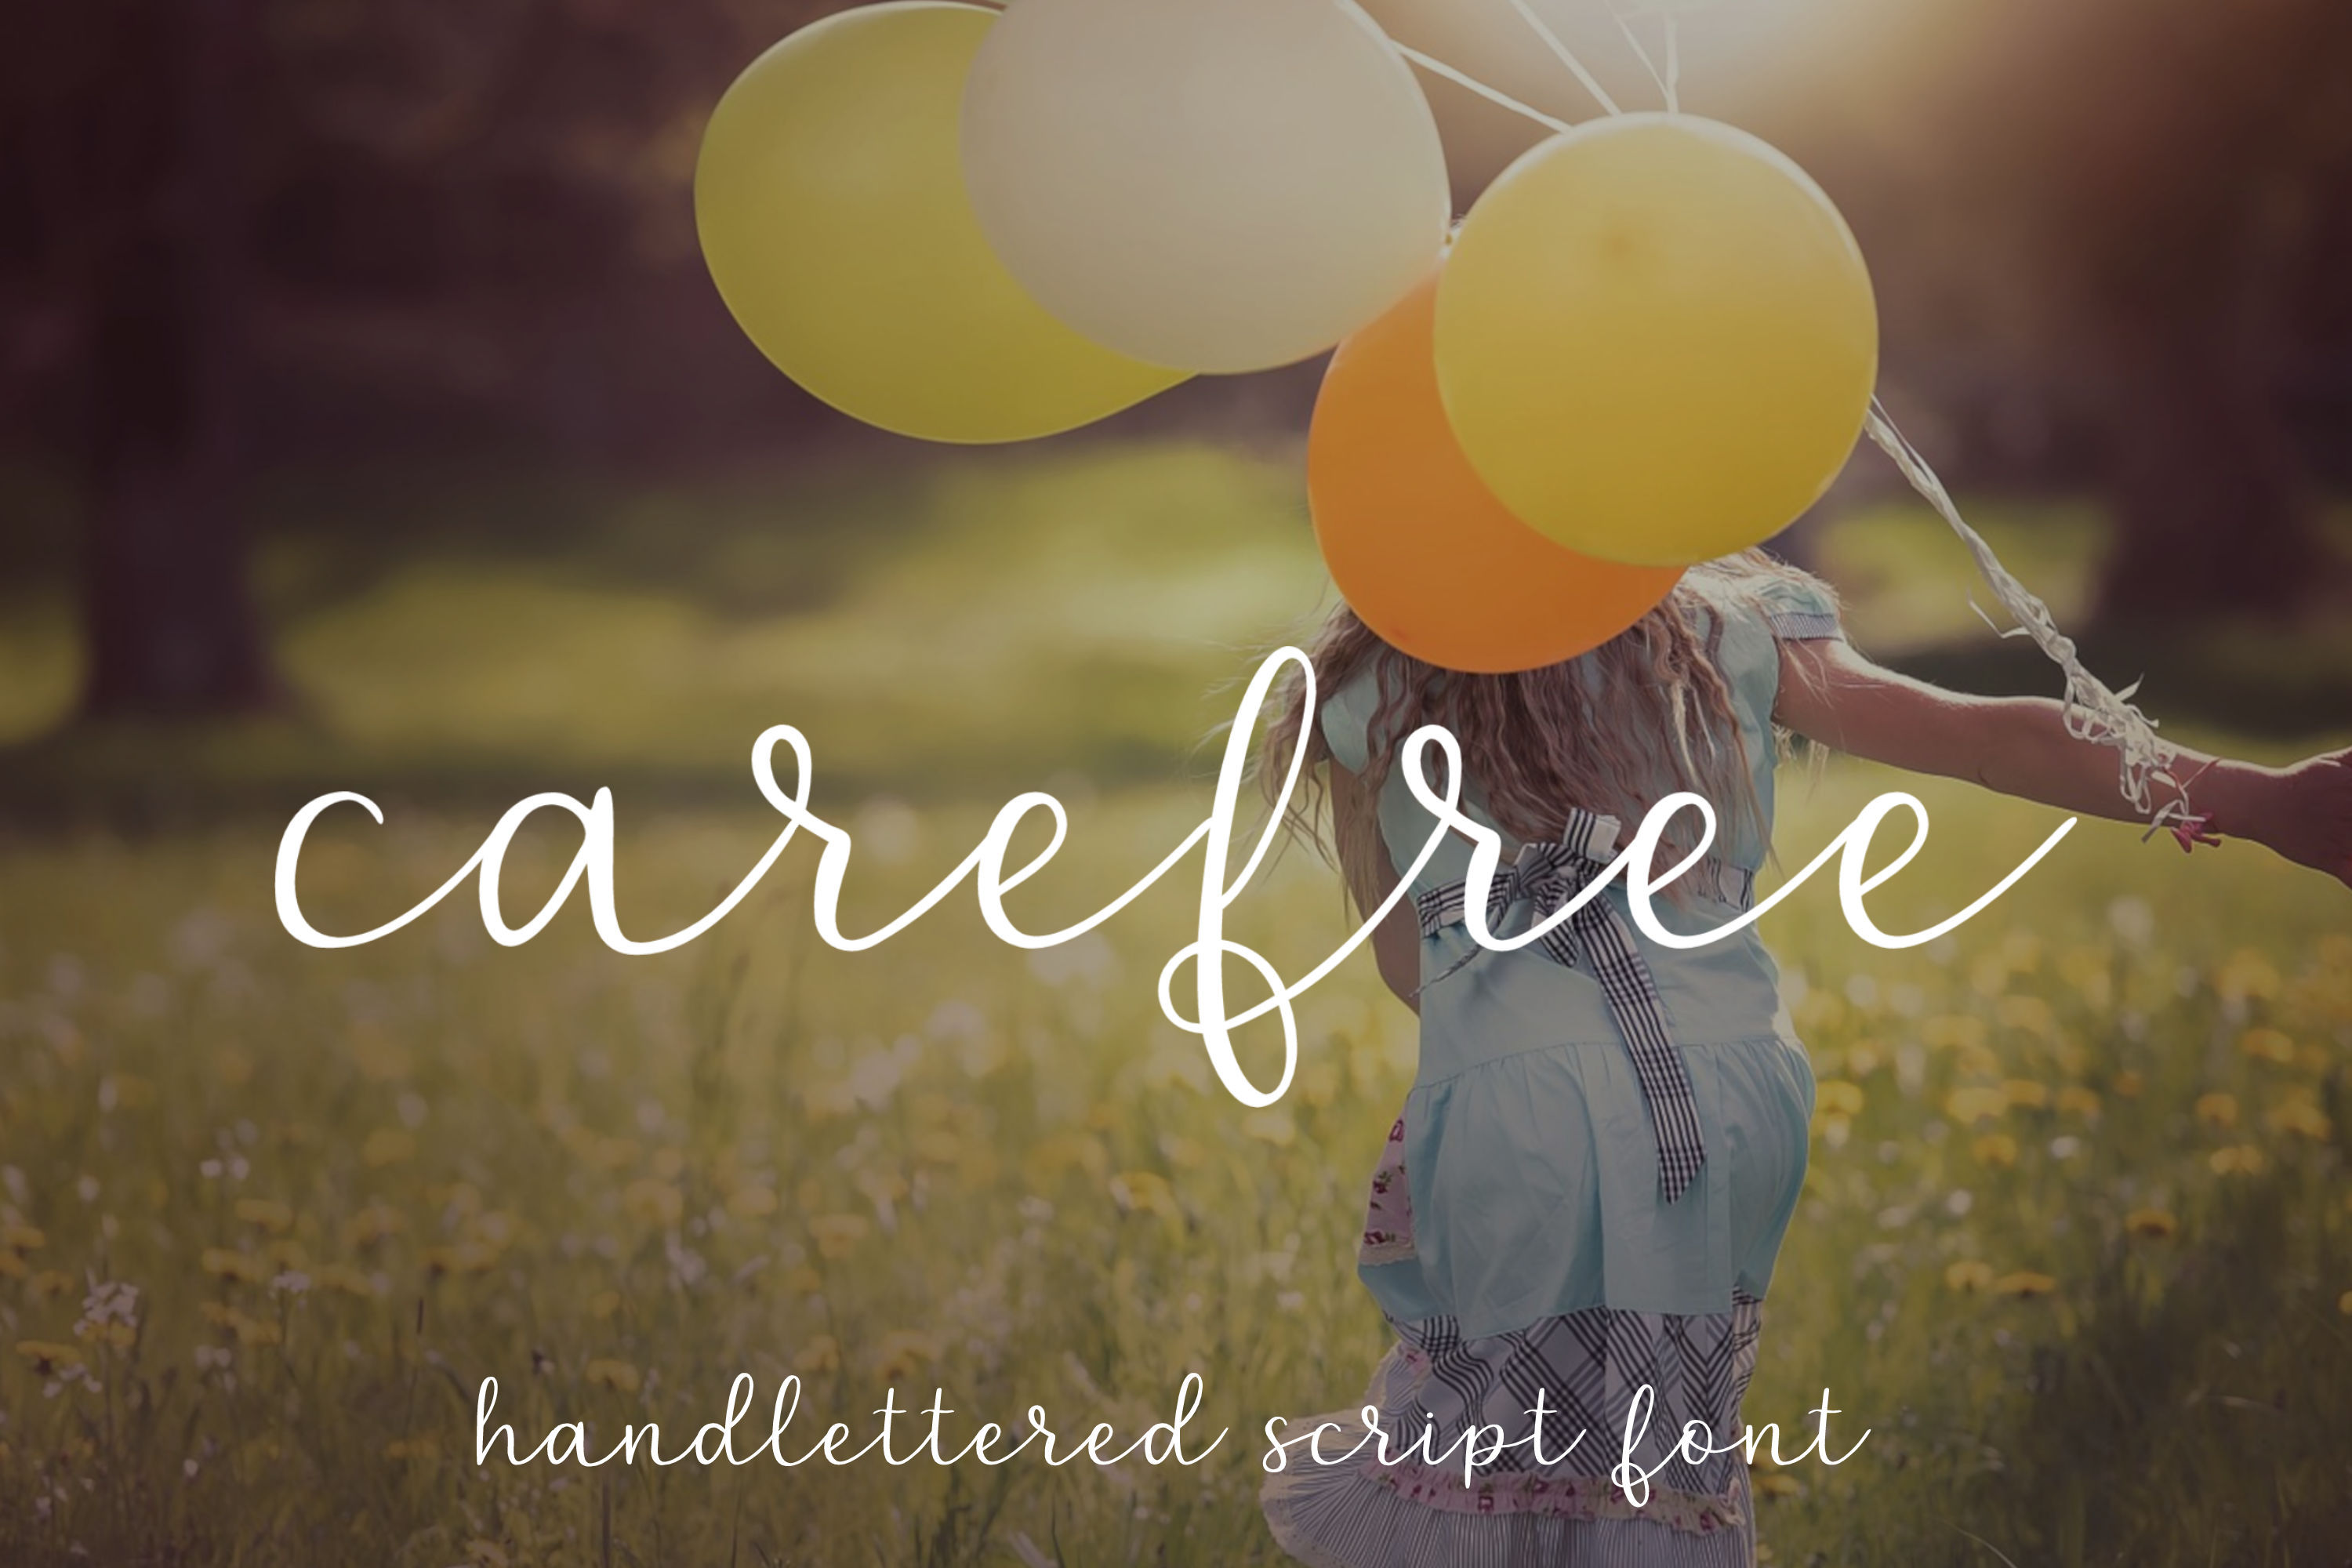 Carefree - A handlettered script font example image 1